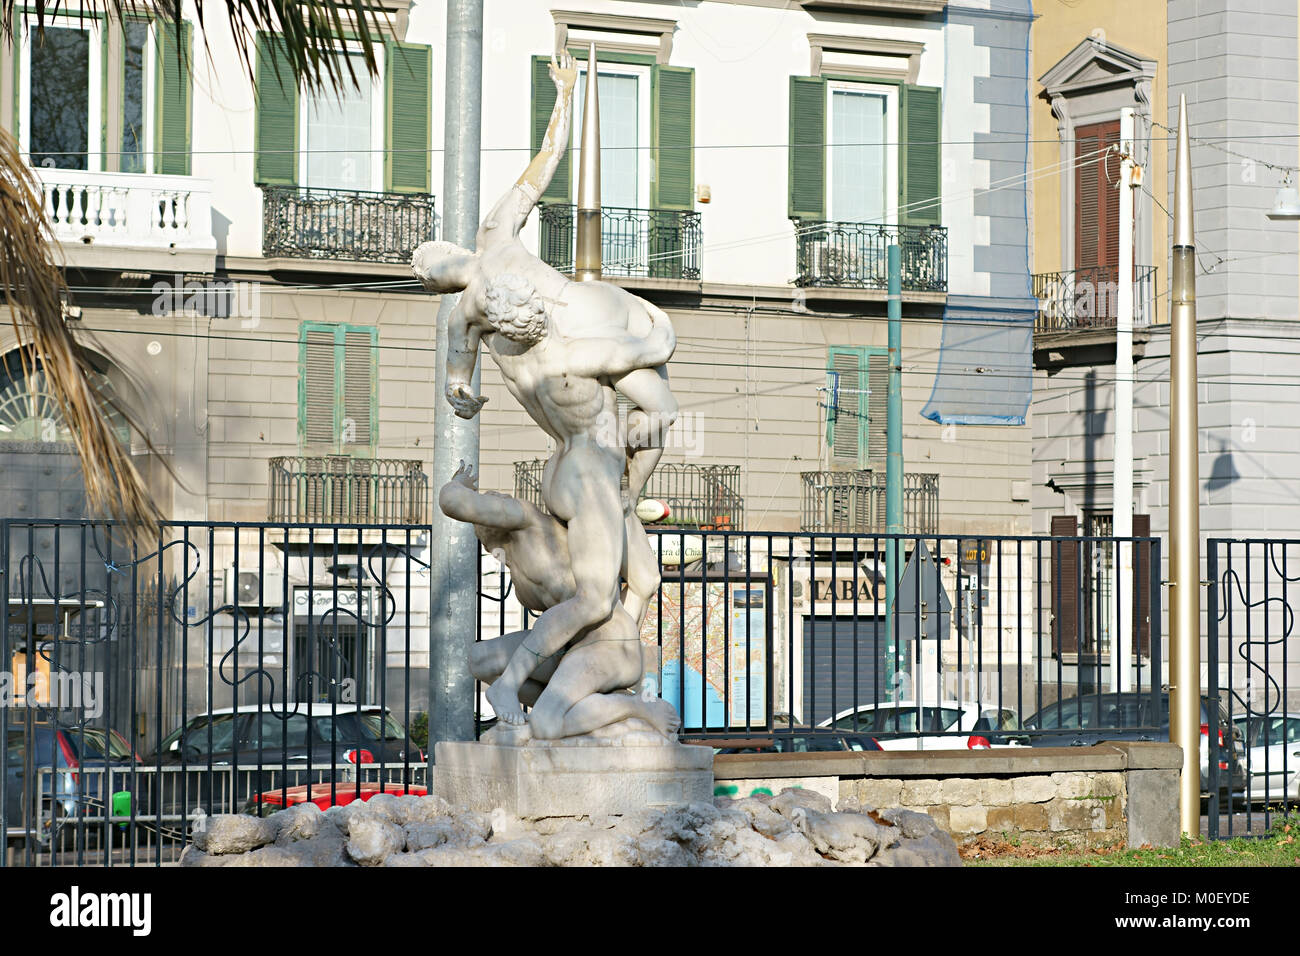 Pan museum, in Naples, Italy - Stock Image